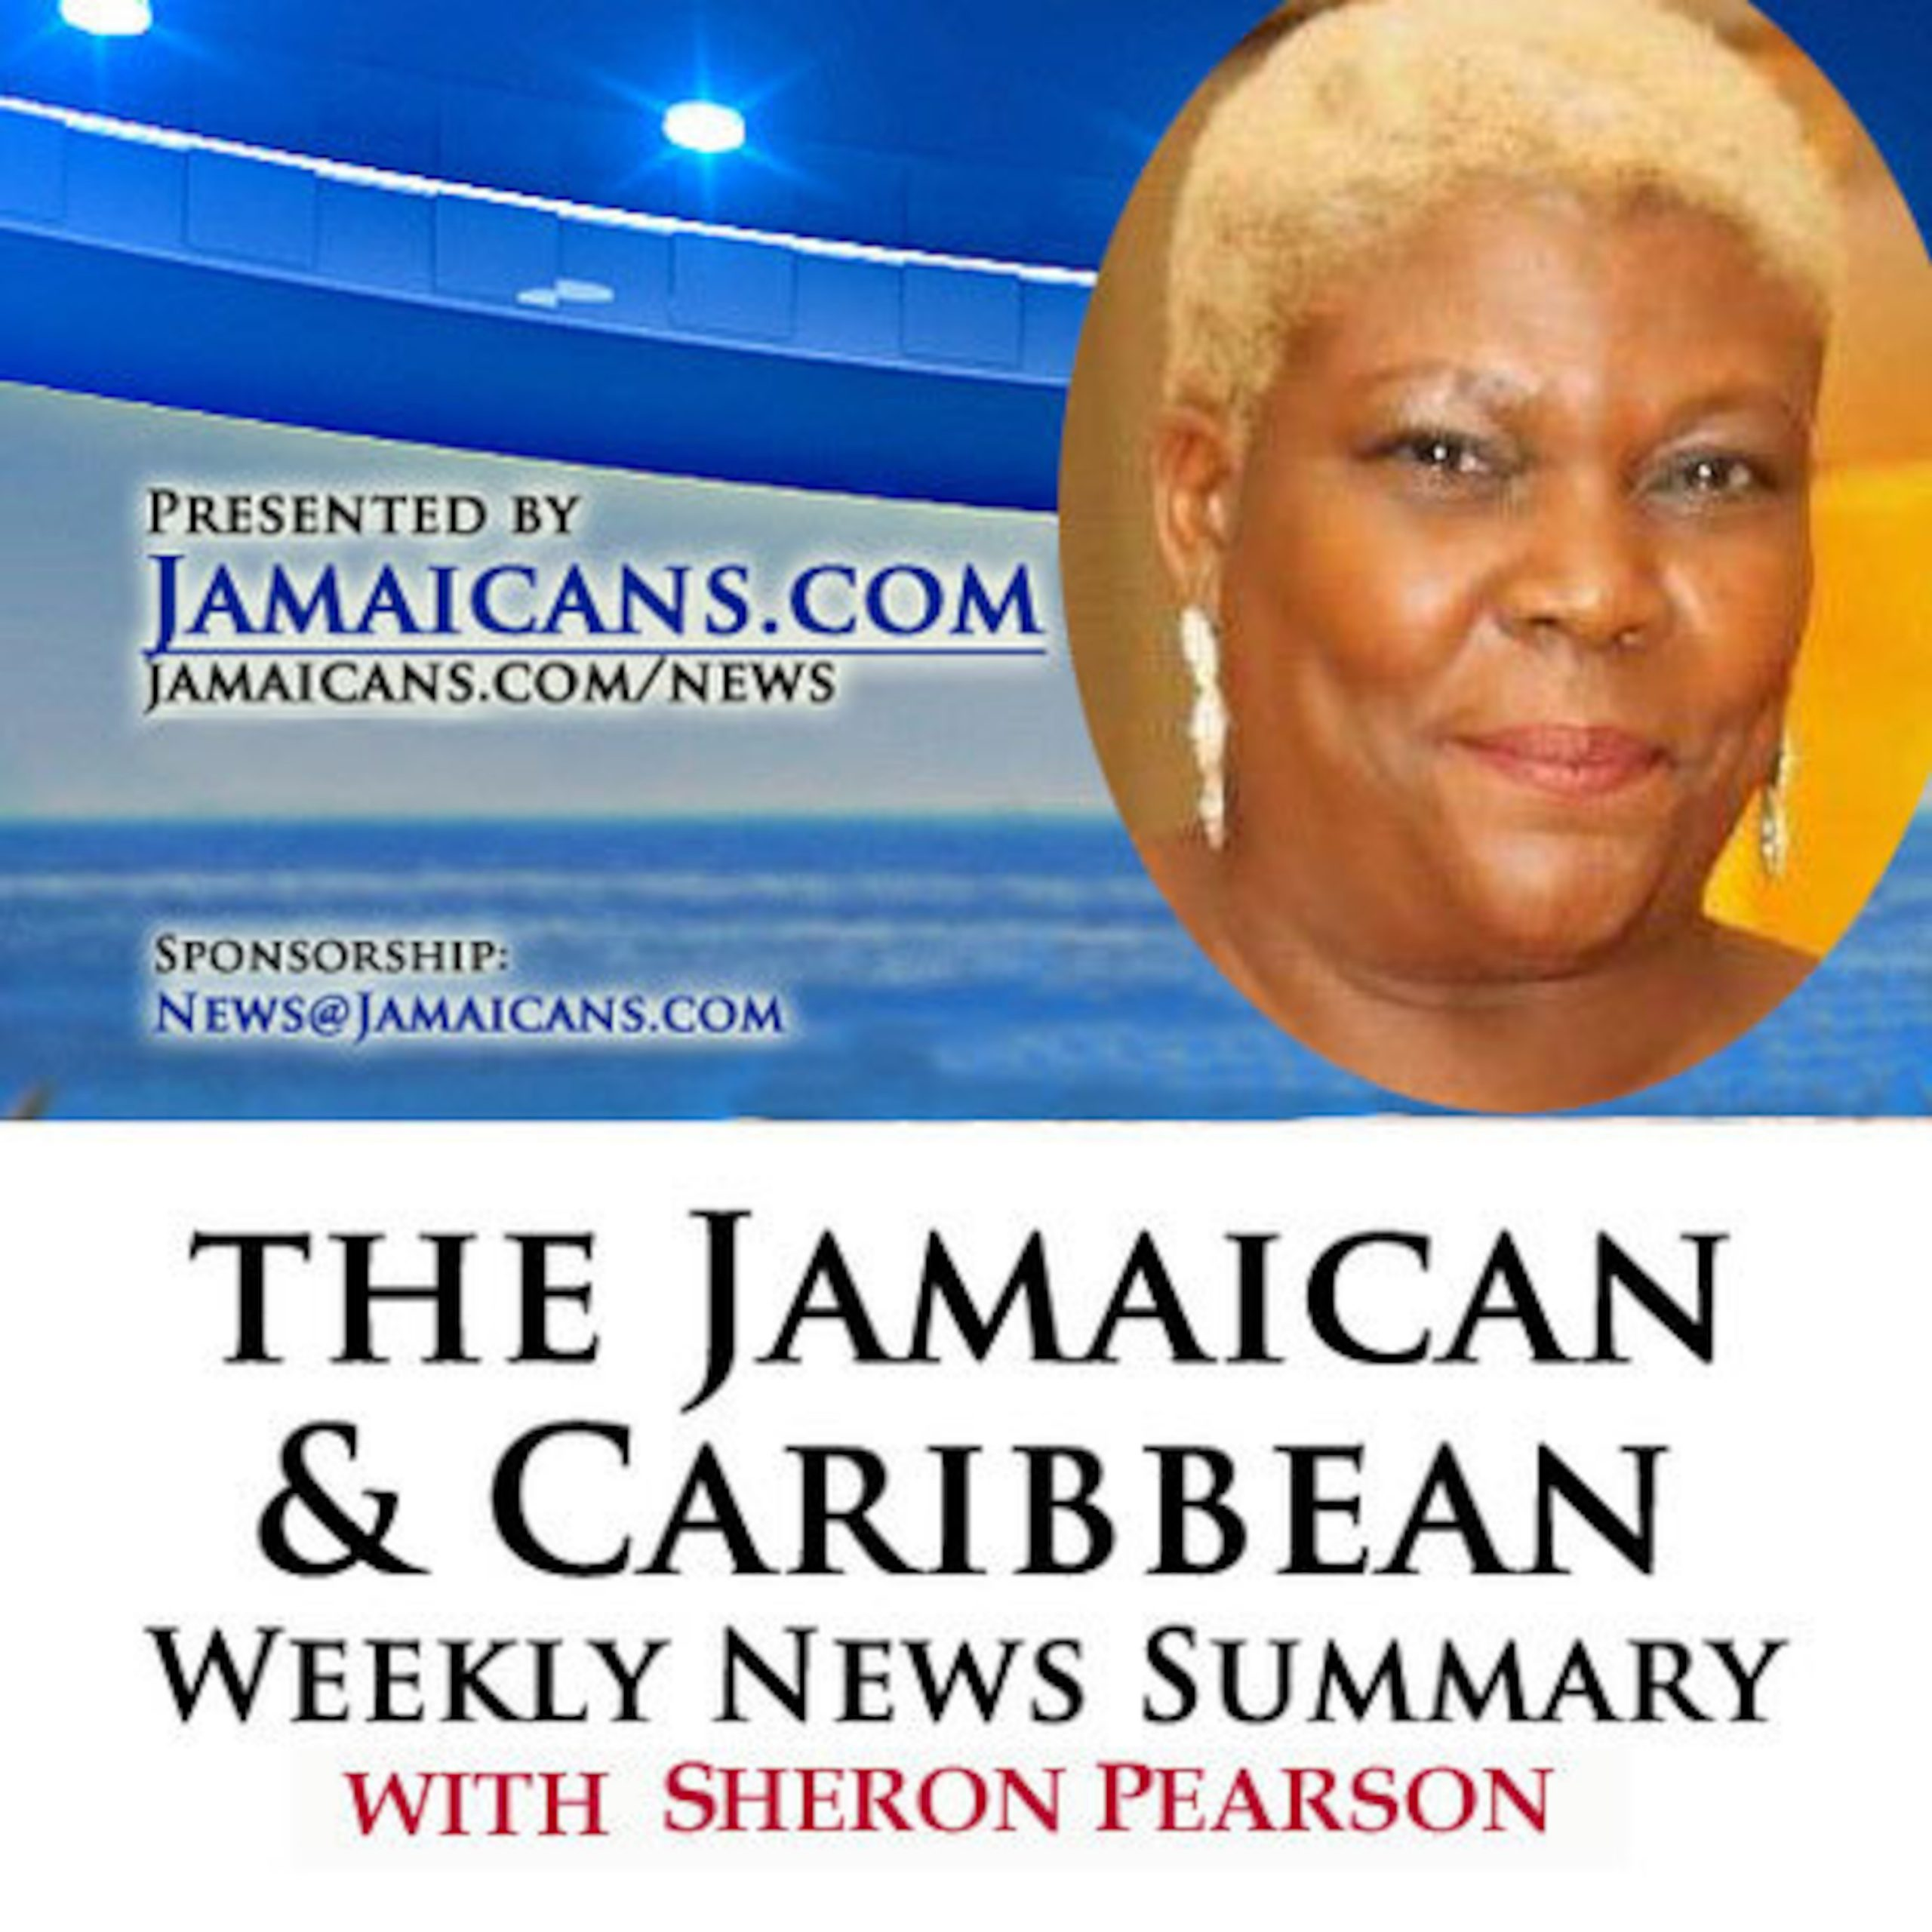 Listen to the Podcast of The Jamaica & Caribbean Weekly News Summary for the week ending December 13, 2019